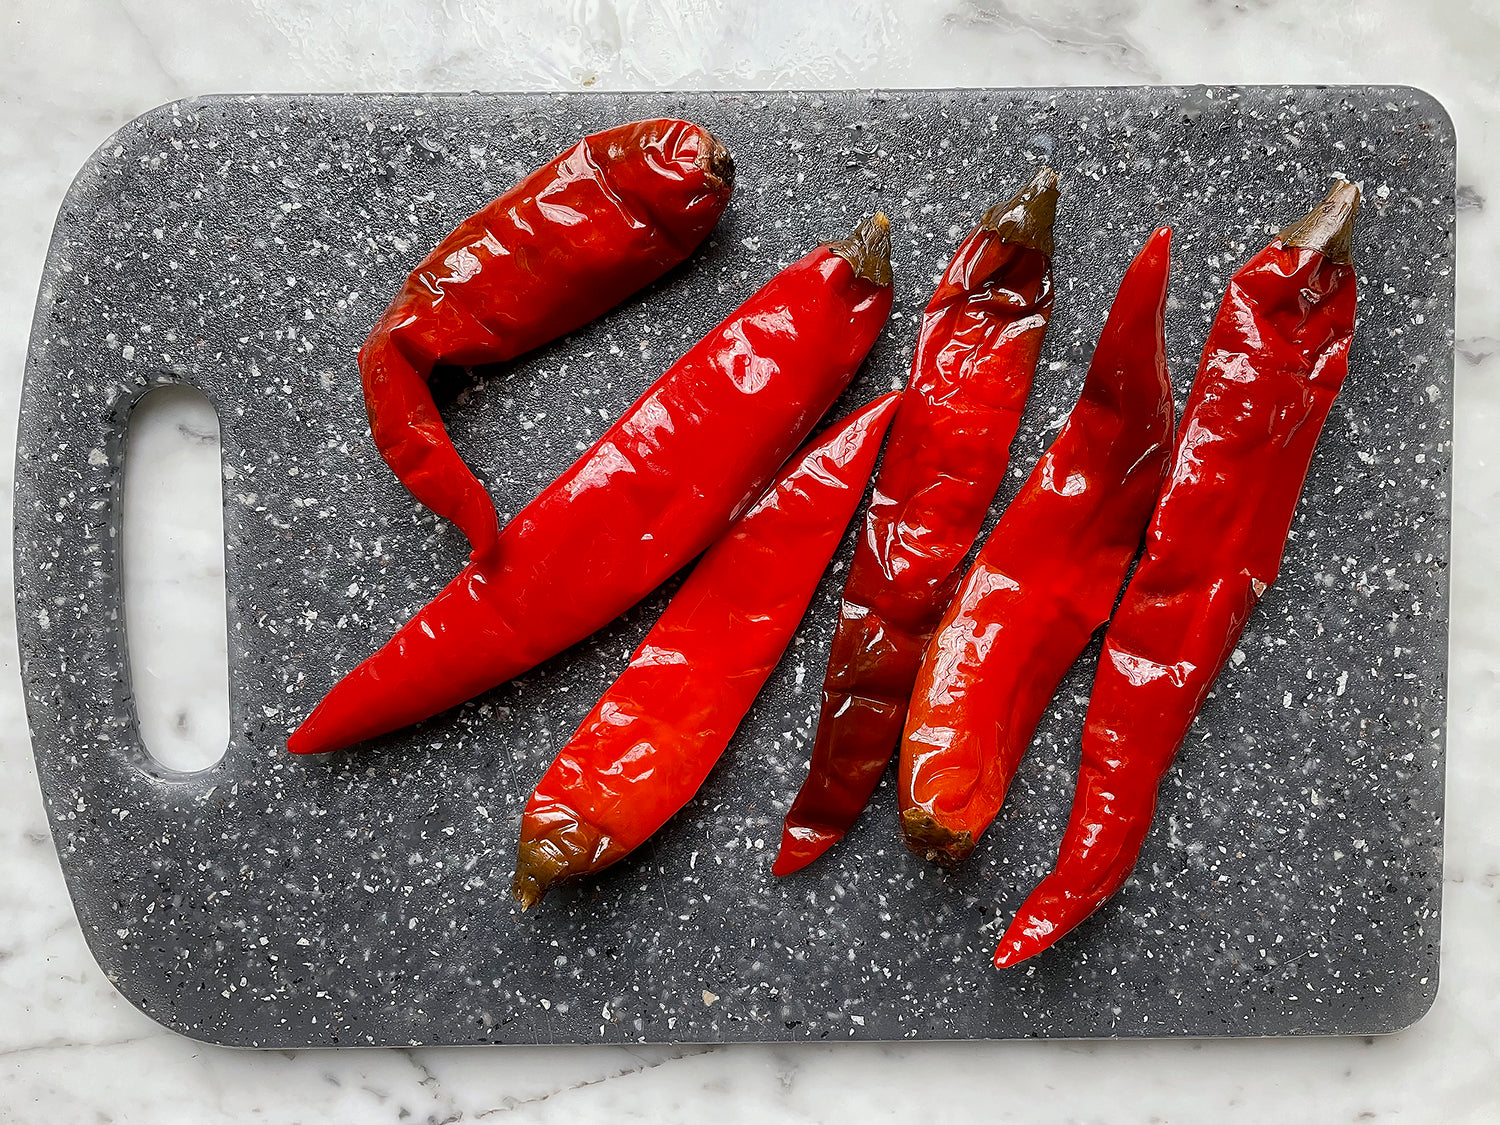 Sichuan Pickled Peppers